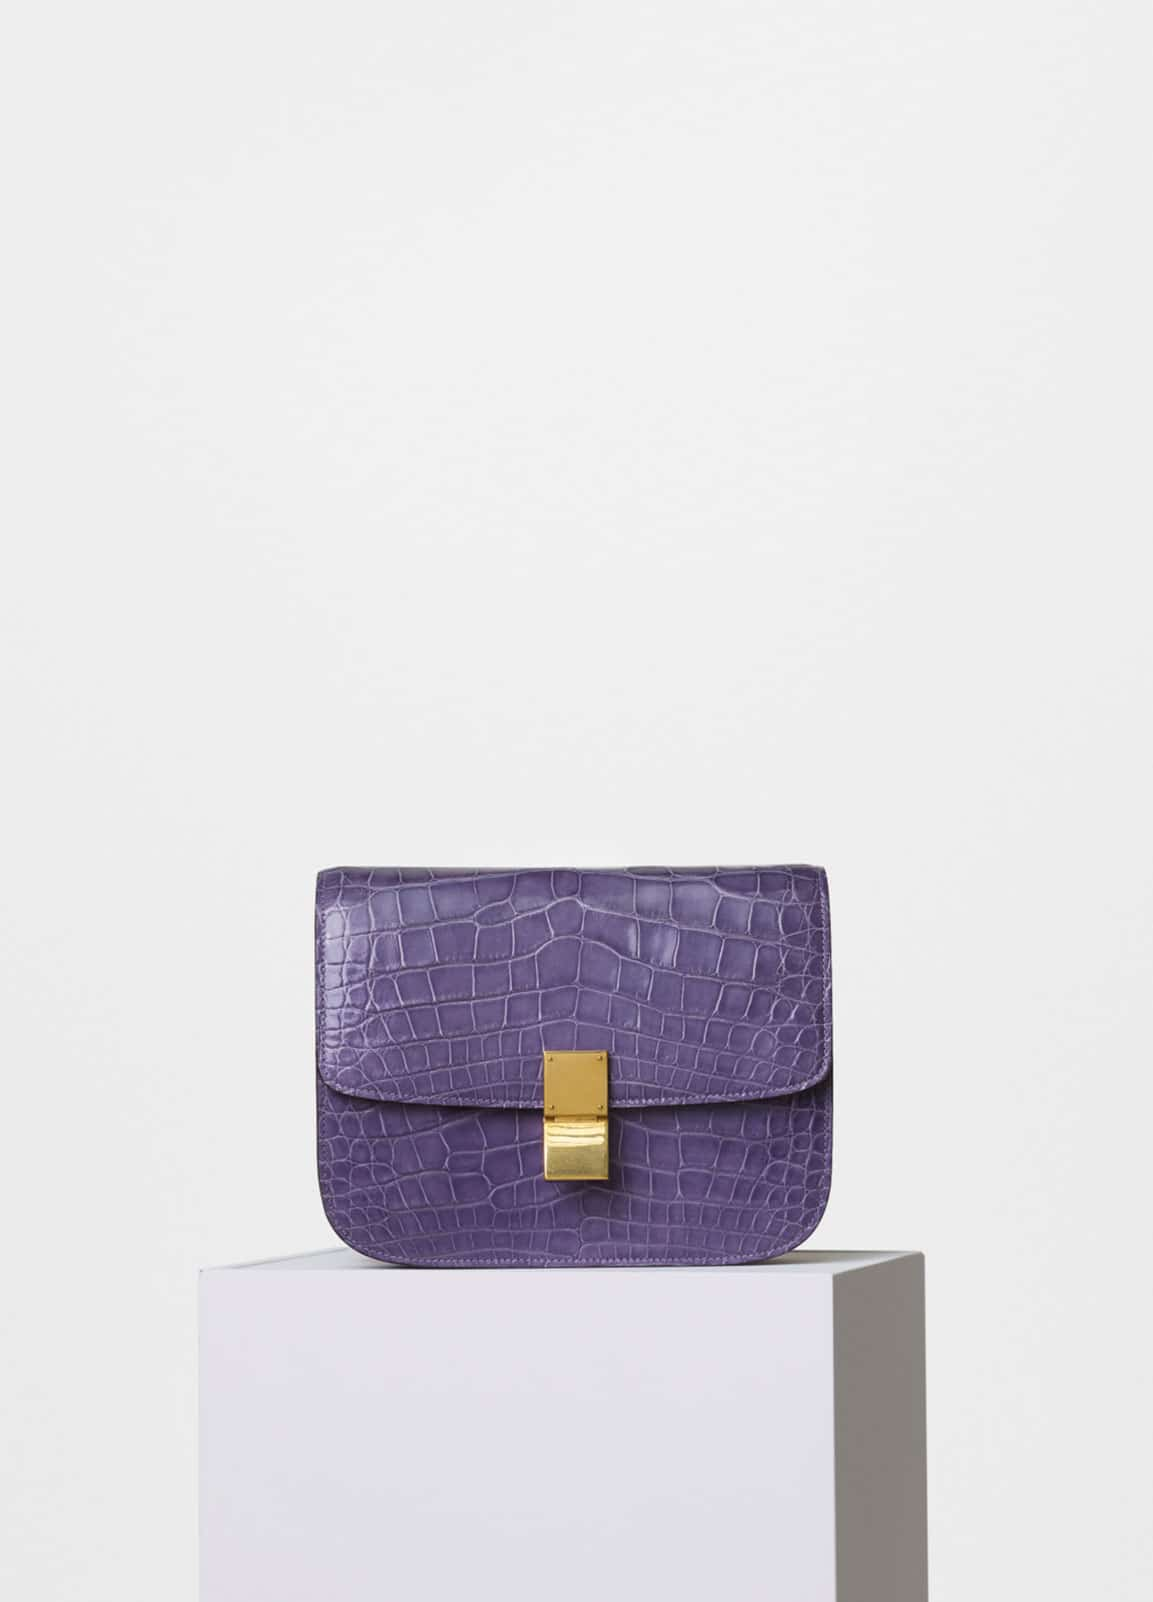 celine purse - Celine Summer 2016 Bag Collection Featuring Pillow Bags | Spotted ...